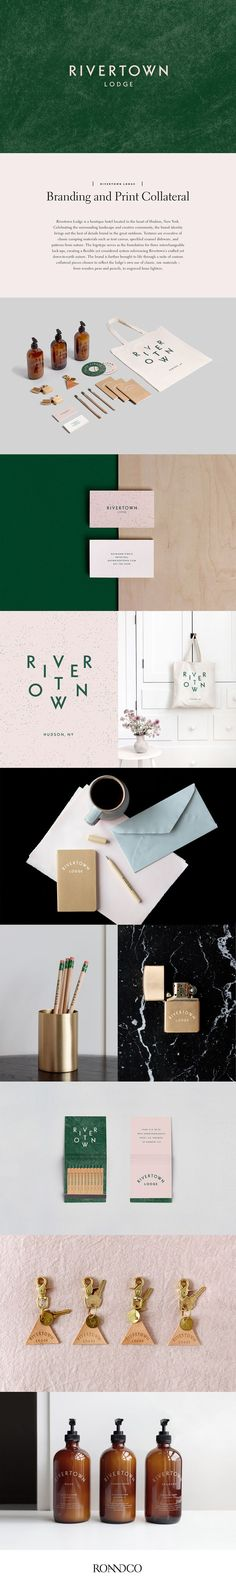 Behance : Editing Rivertown Lodge